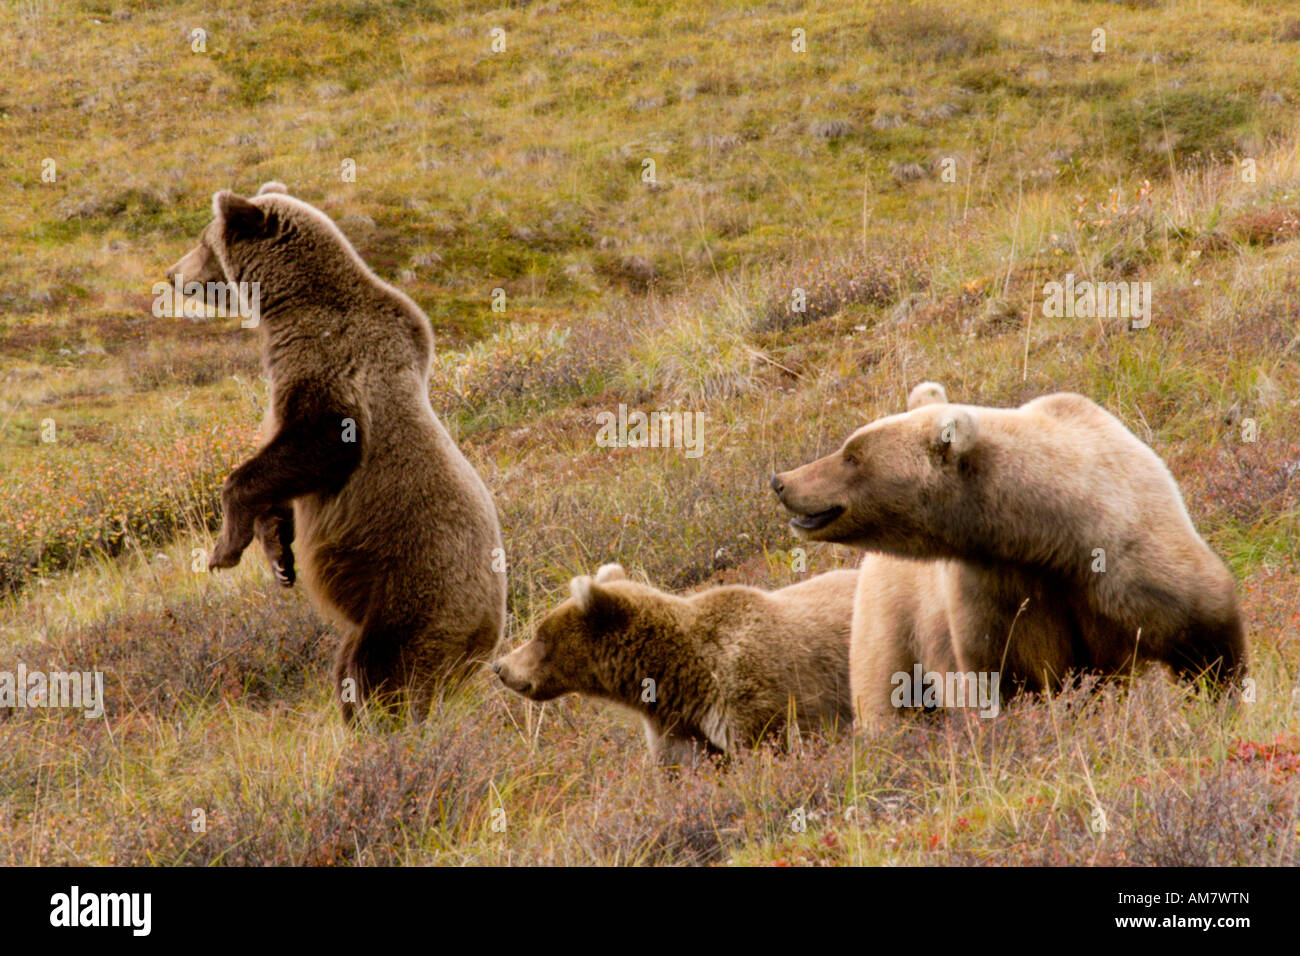 Grizzly bear, Ursus arctos horribilis, female and adolescent bears, Alaska, USA - Stock Image